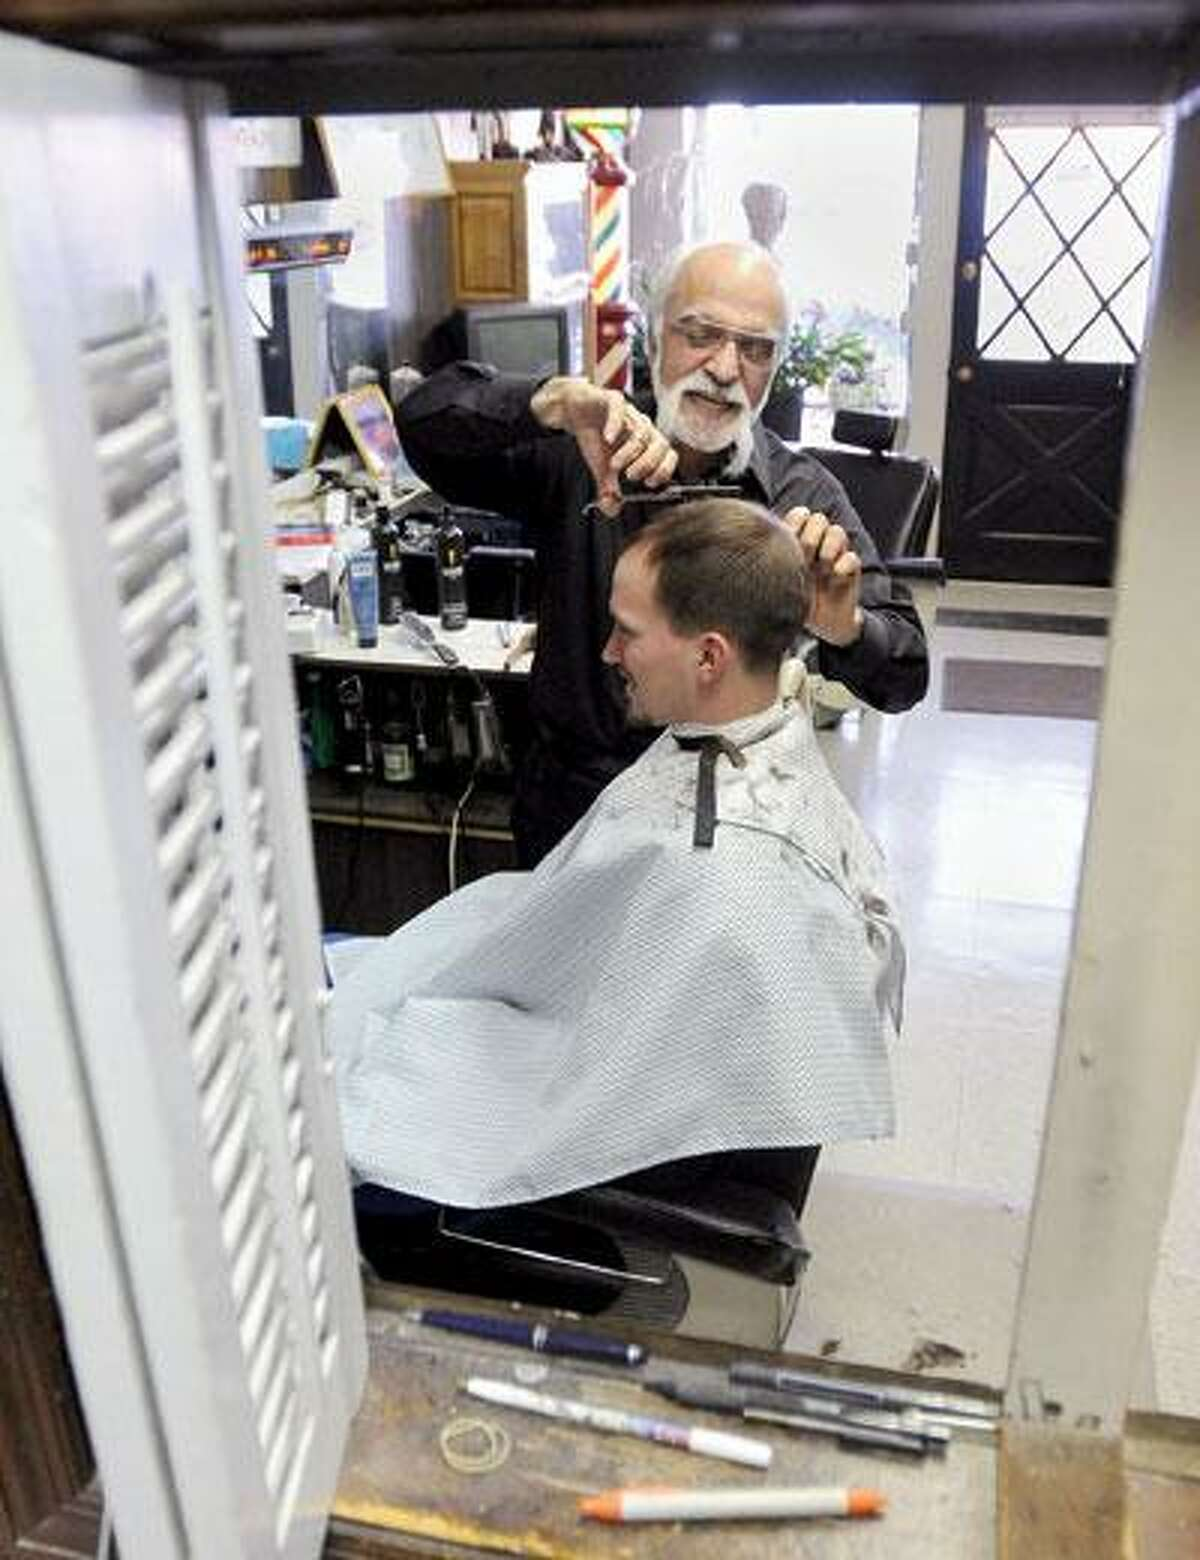 Anthony Gamberdella has been cutting hair in New Haven for 50 years. He's retiring in April. (Brad Horrigan/Register)